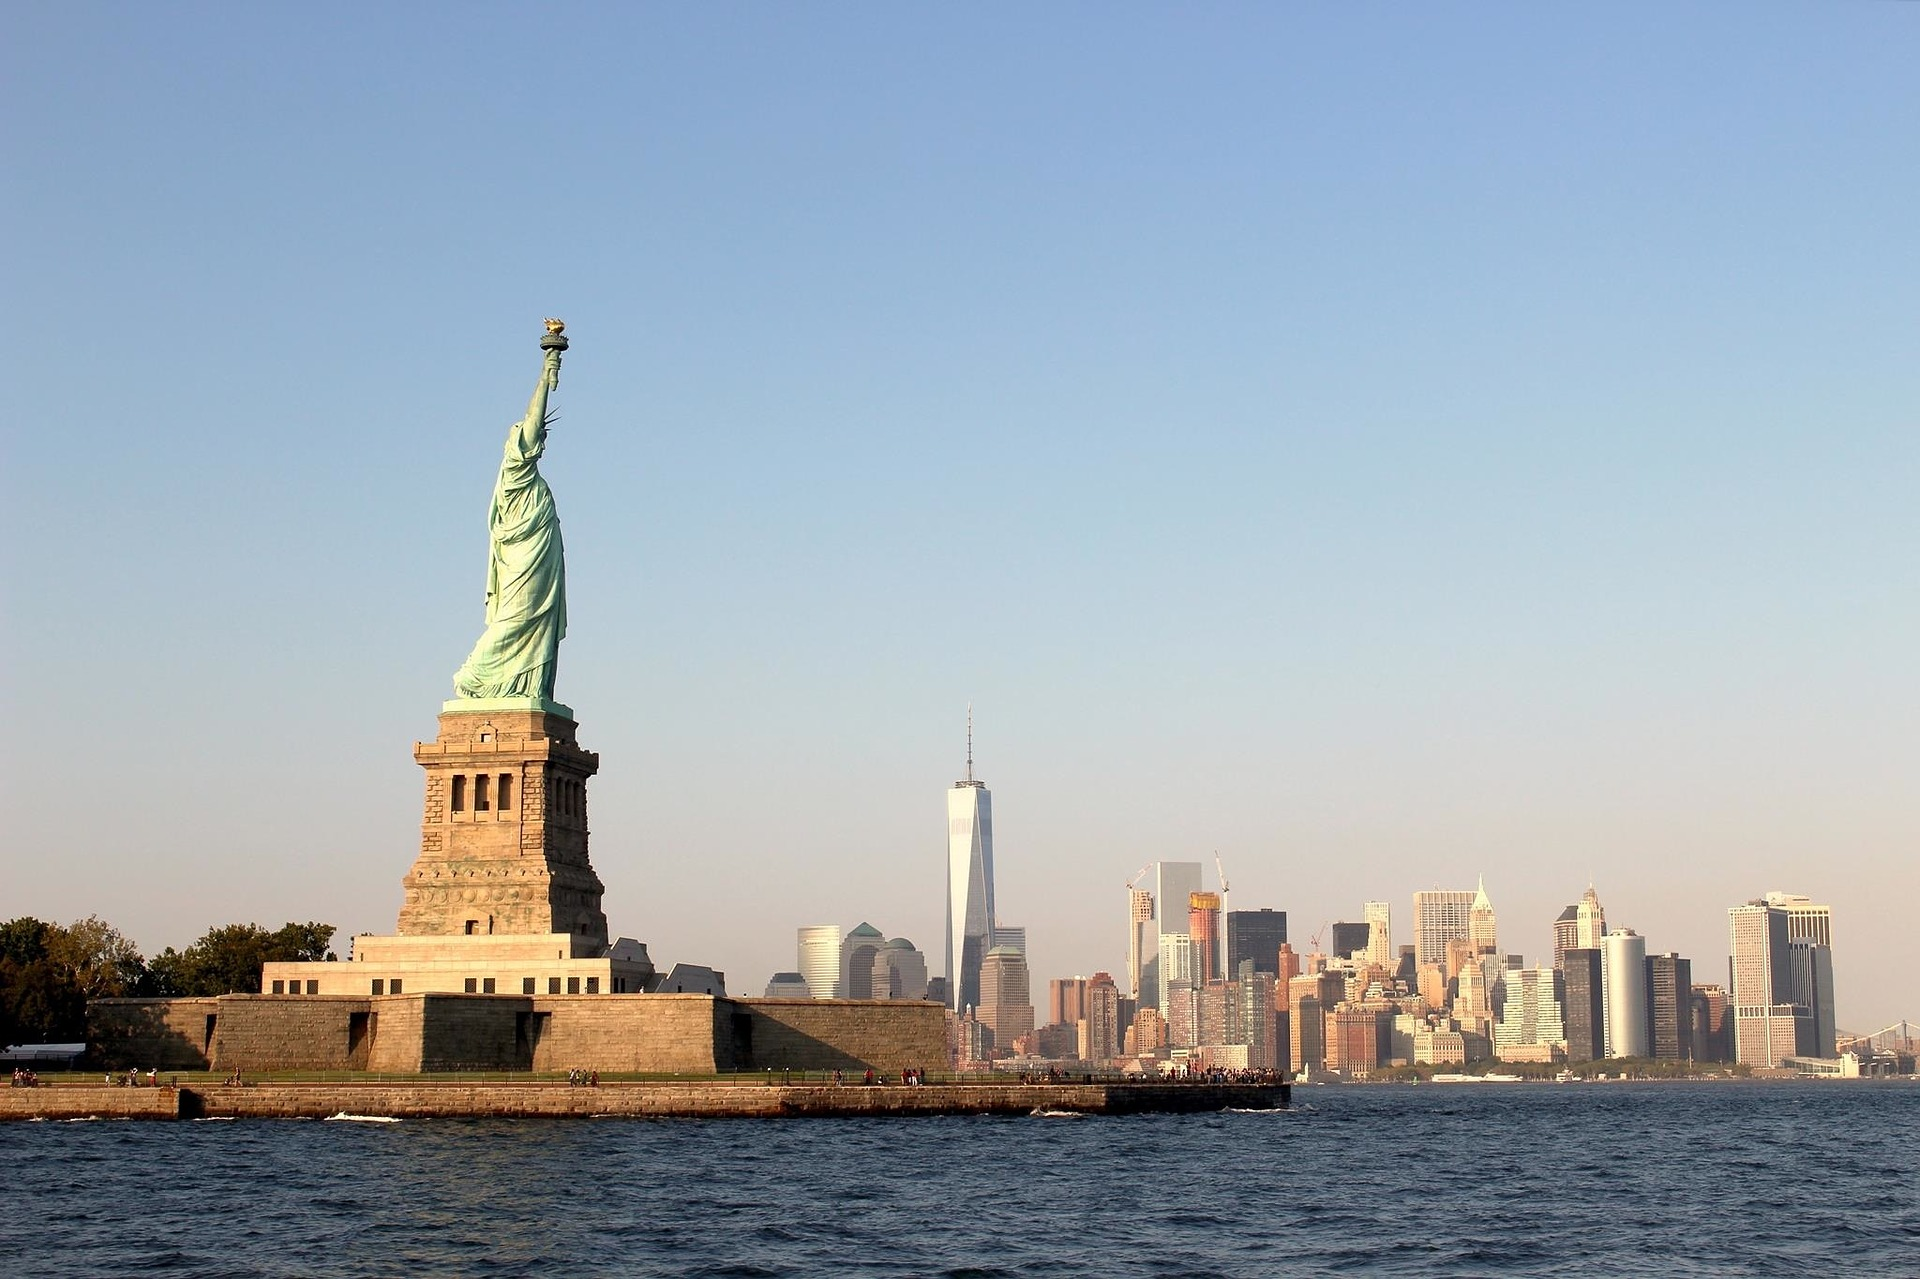 Statue Of Liberty 1031550 1920 Newsshooter